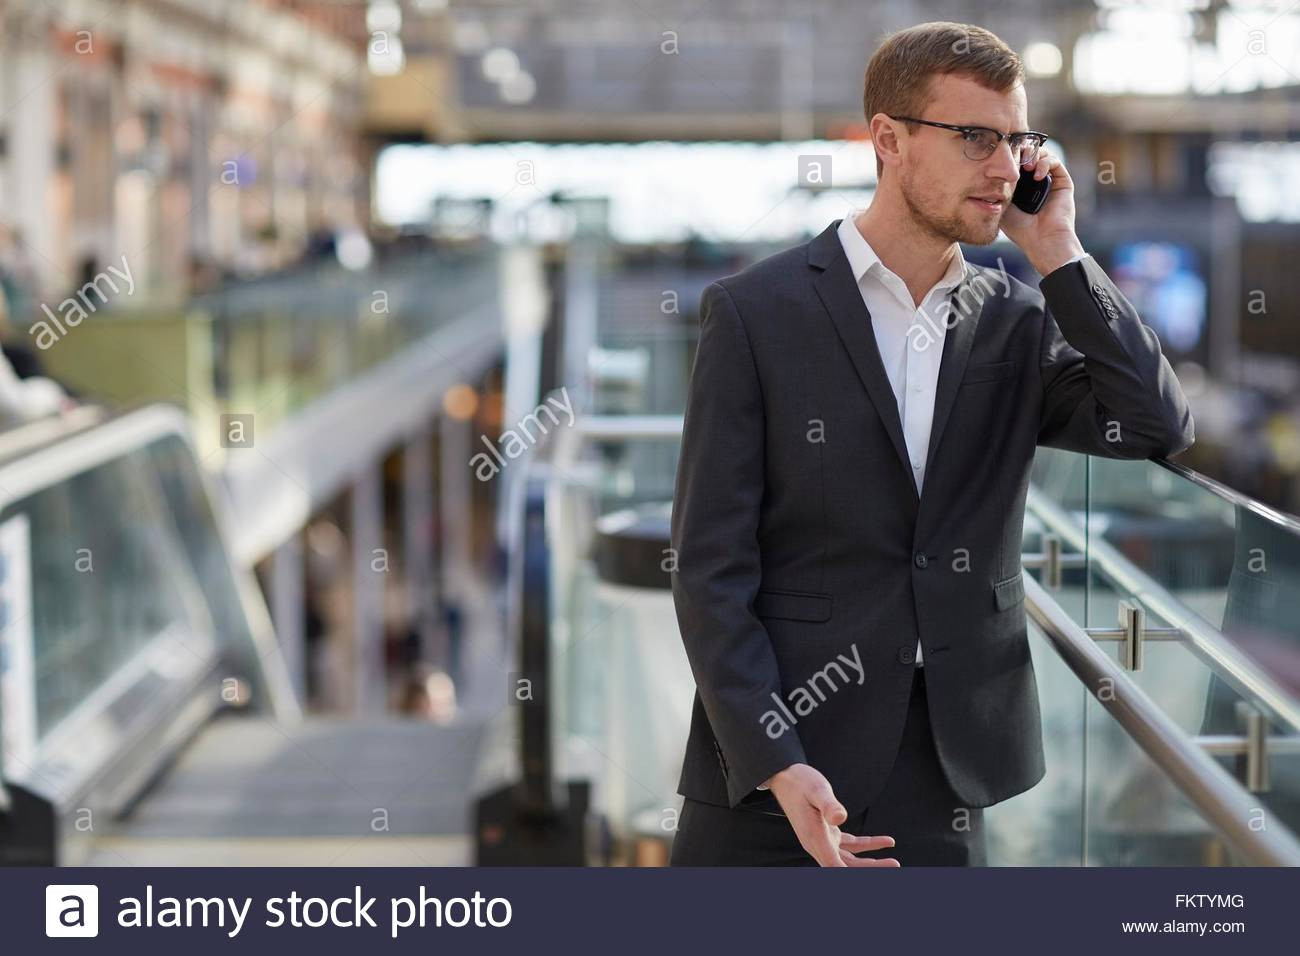 Mid adult businessman leaning against glass panel using smartphone to make telephone call - Stock Image